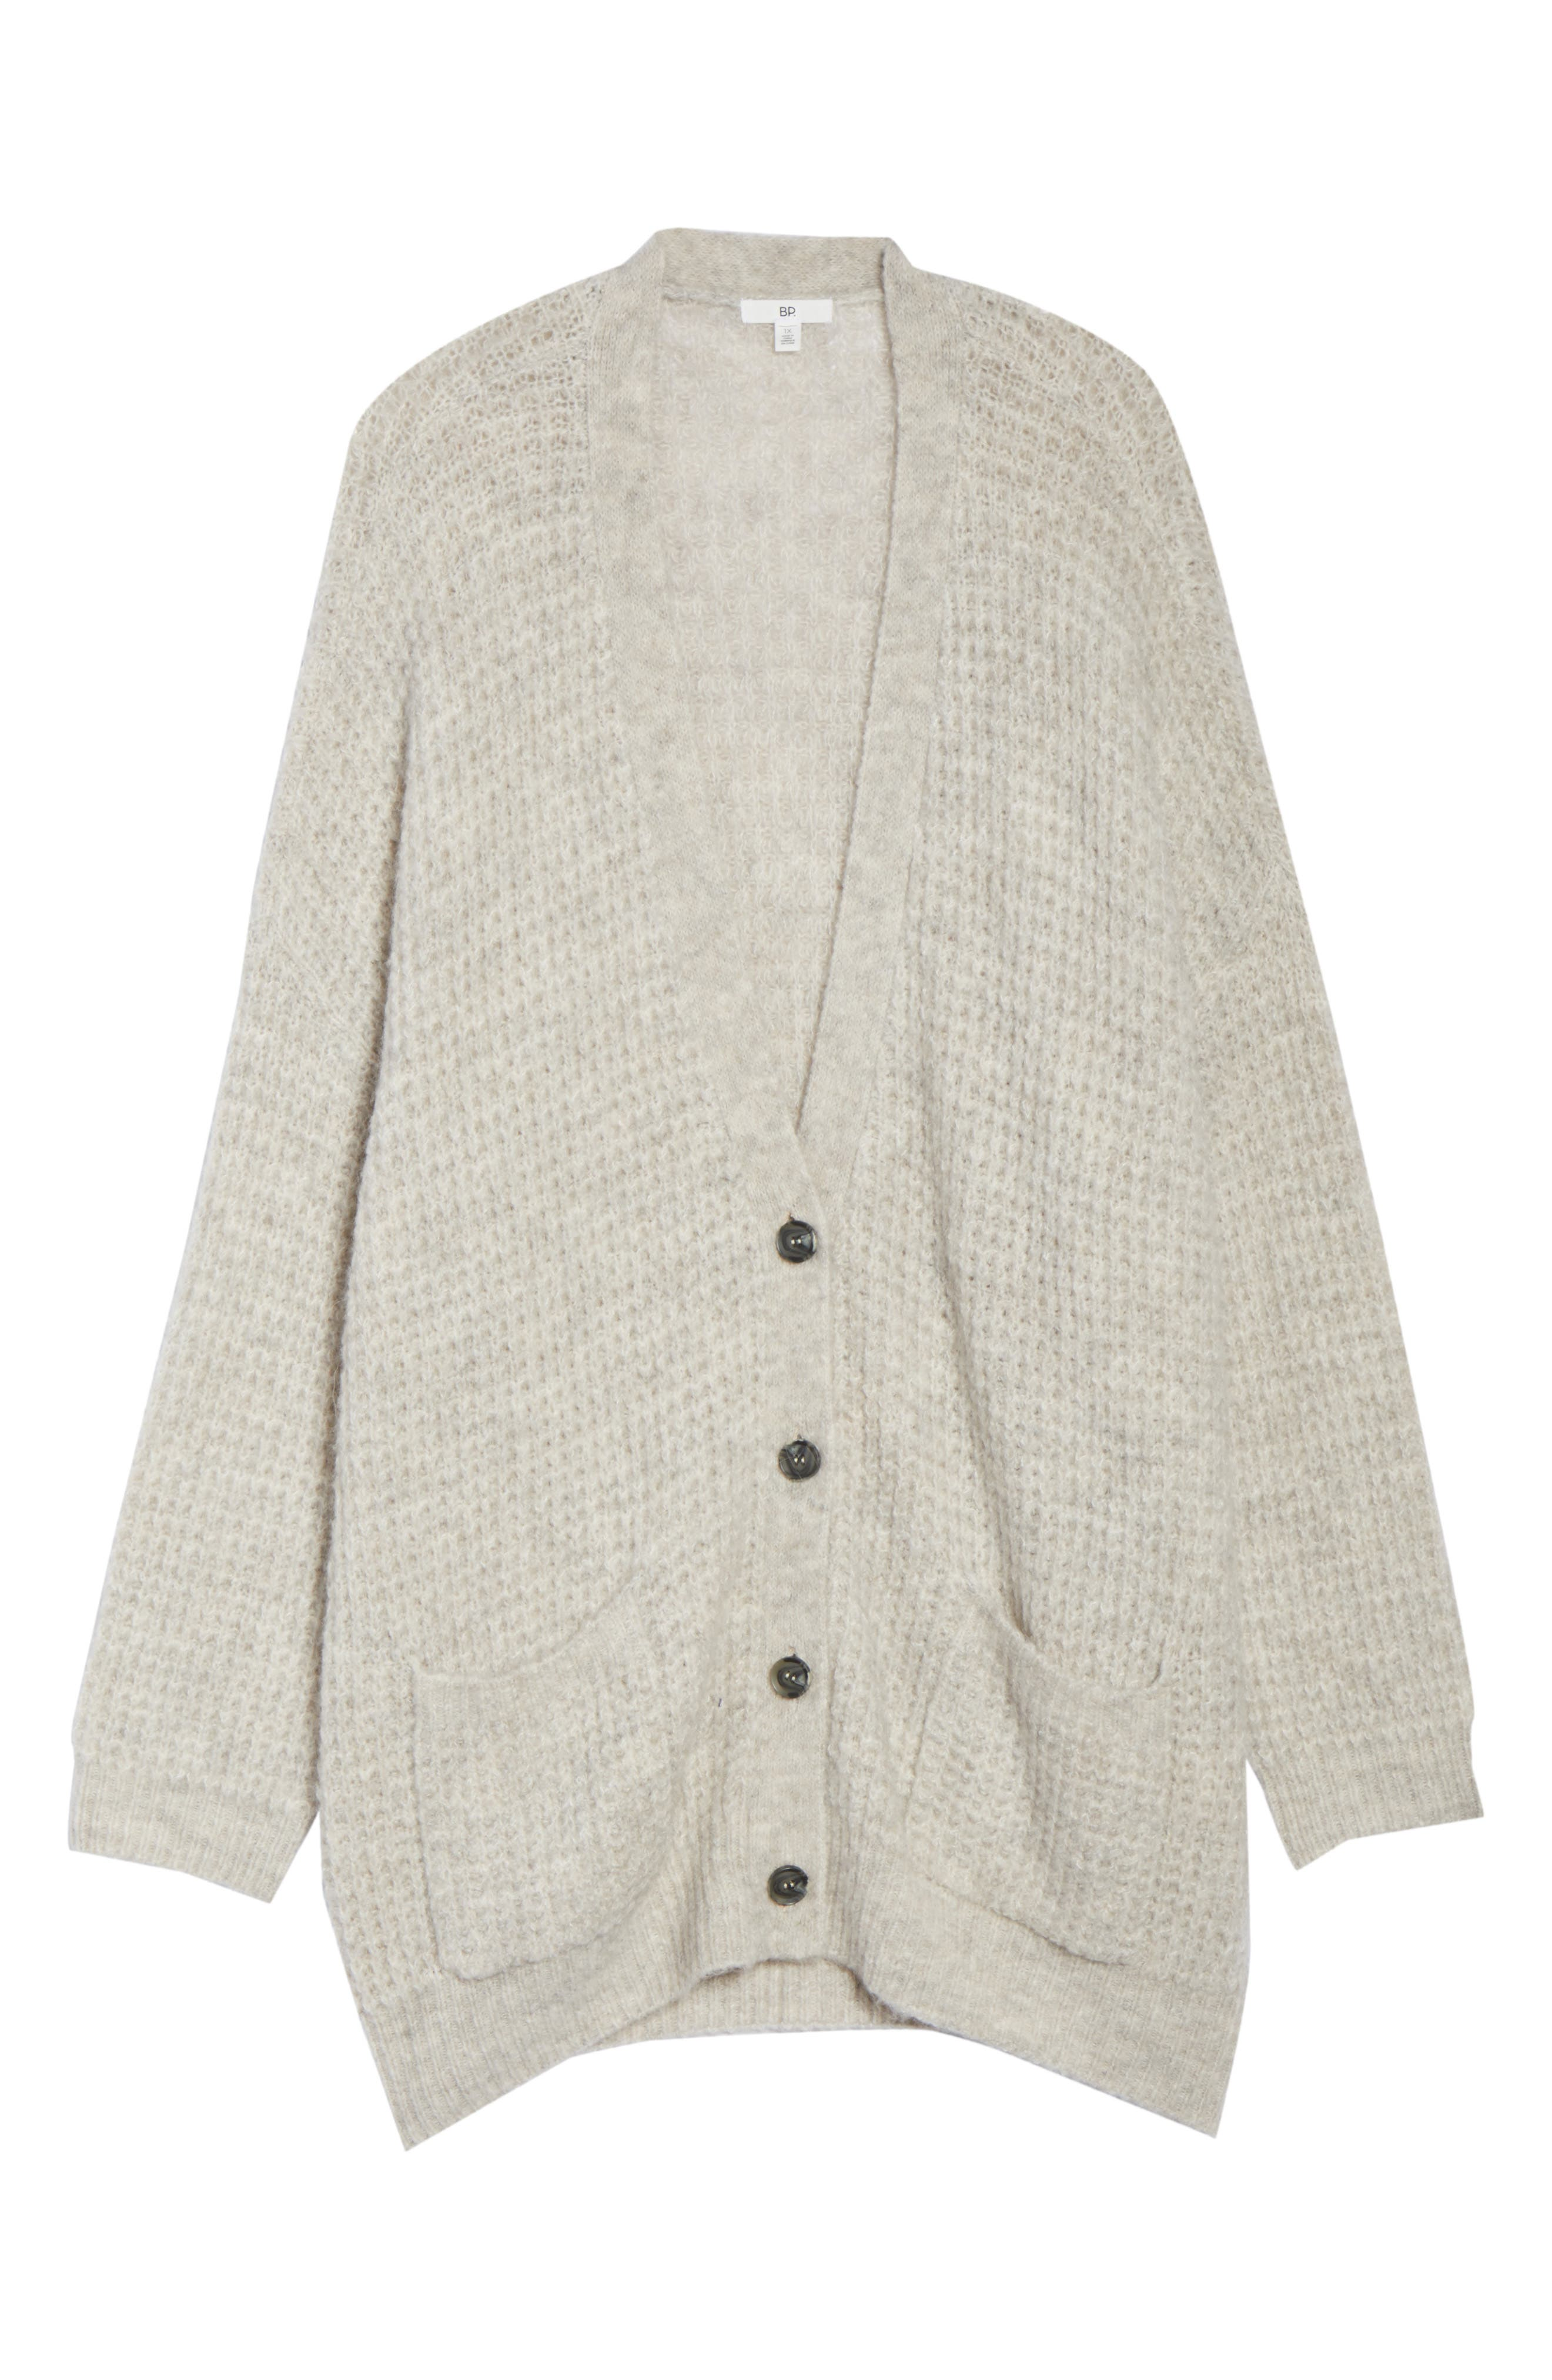 Oversized Waffle Stitch Cardigan,                             Alternate thumbnail 11, color,                             BEIGE BIRCH